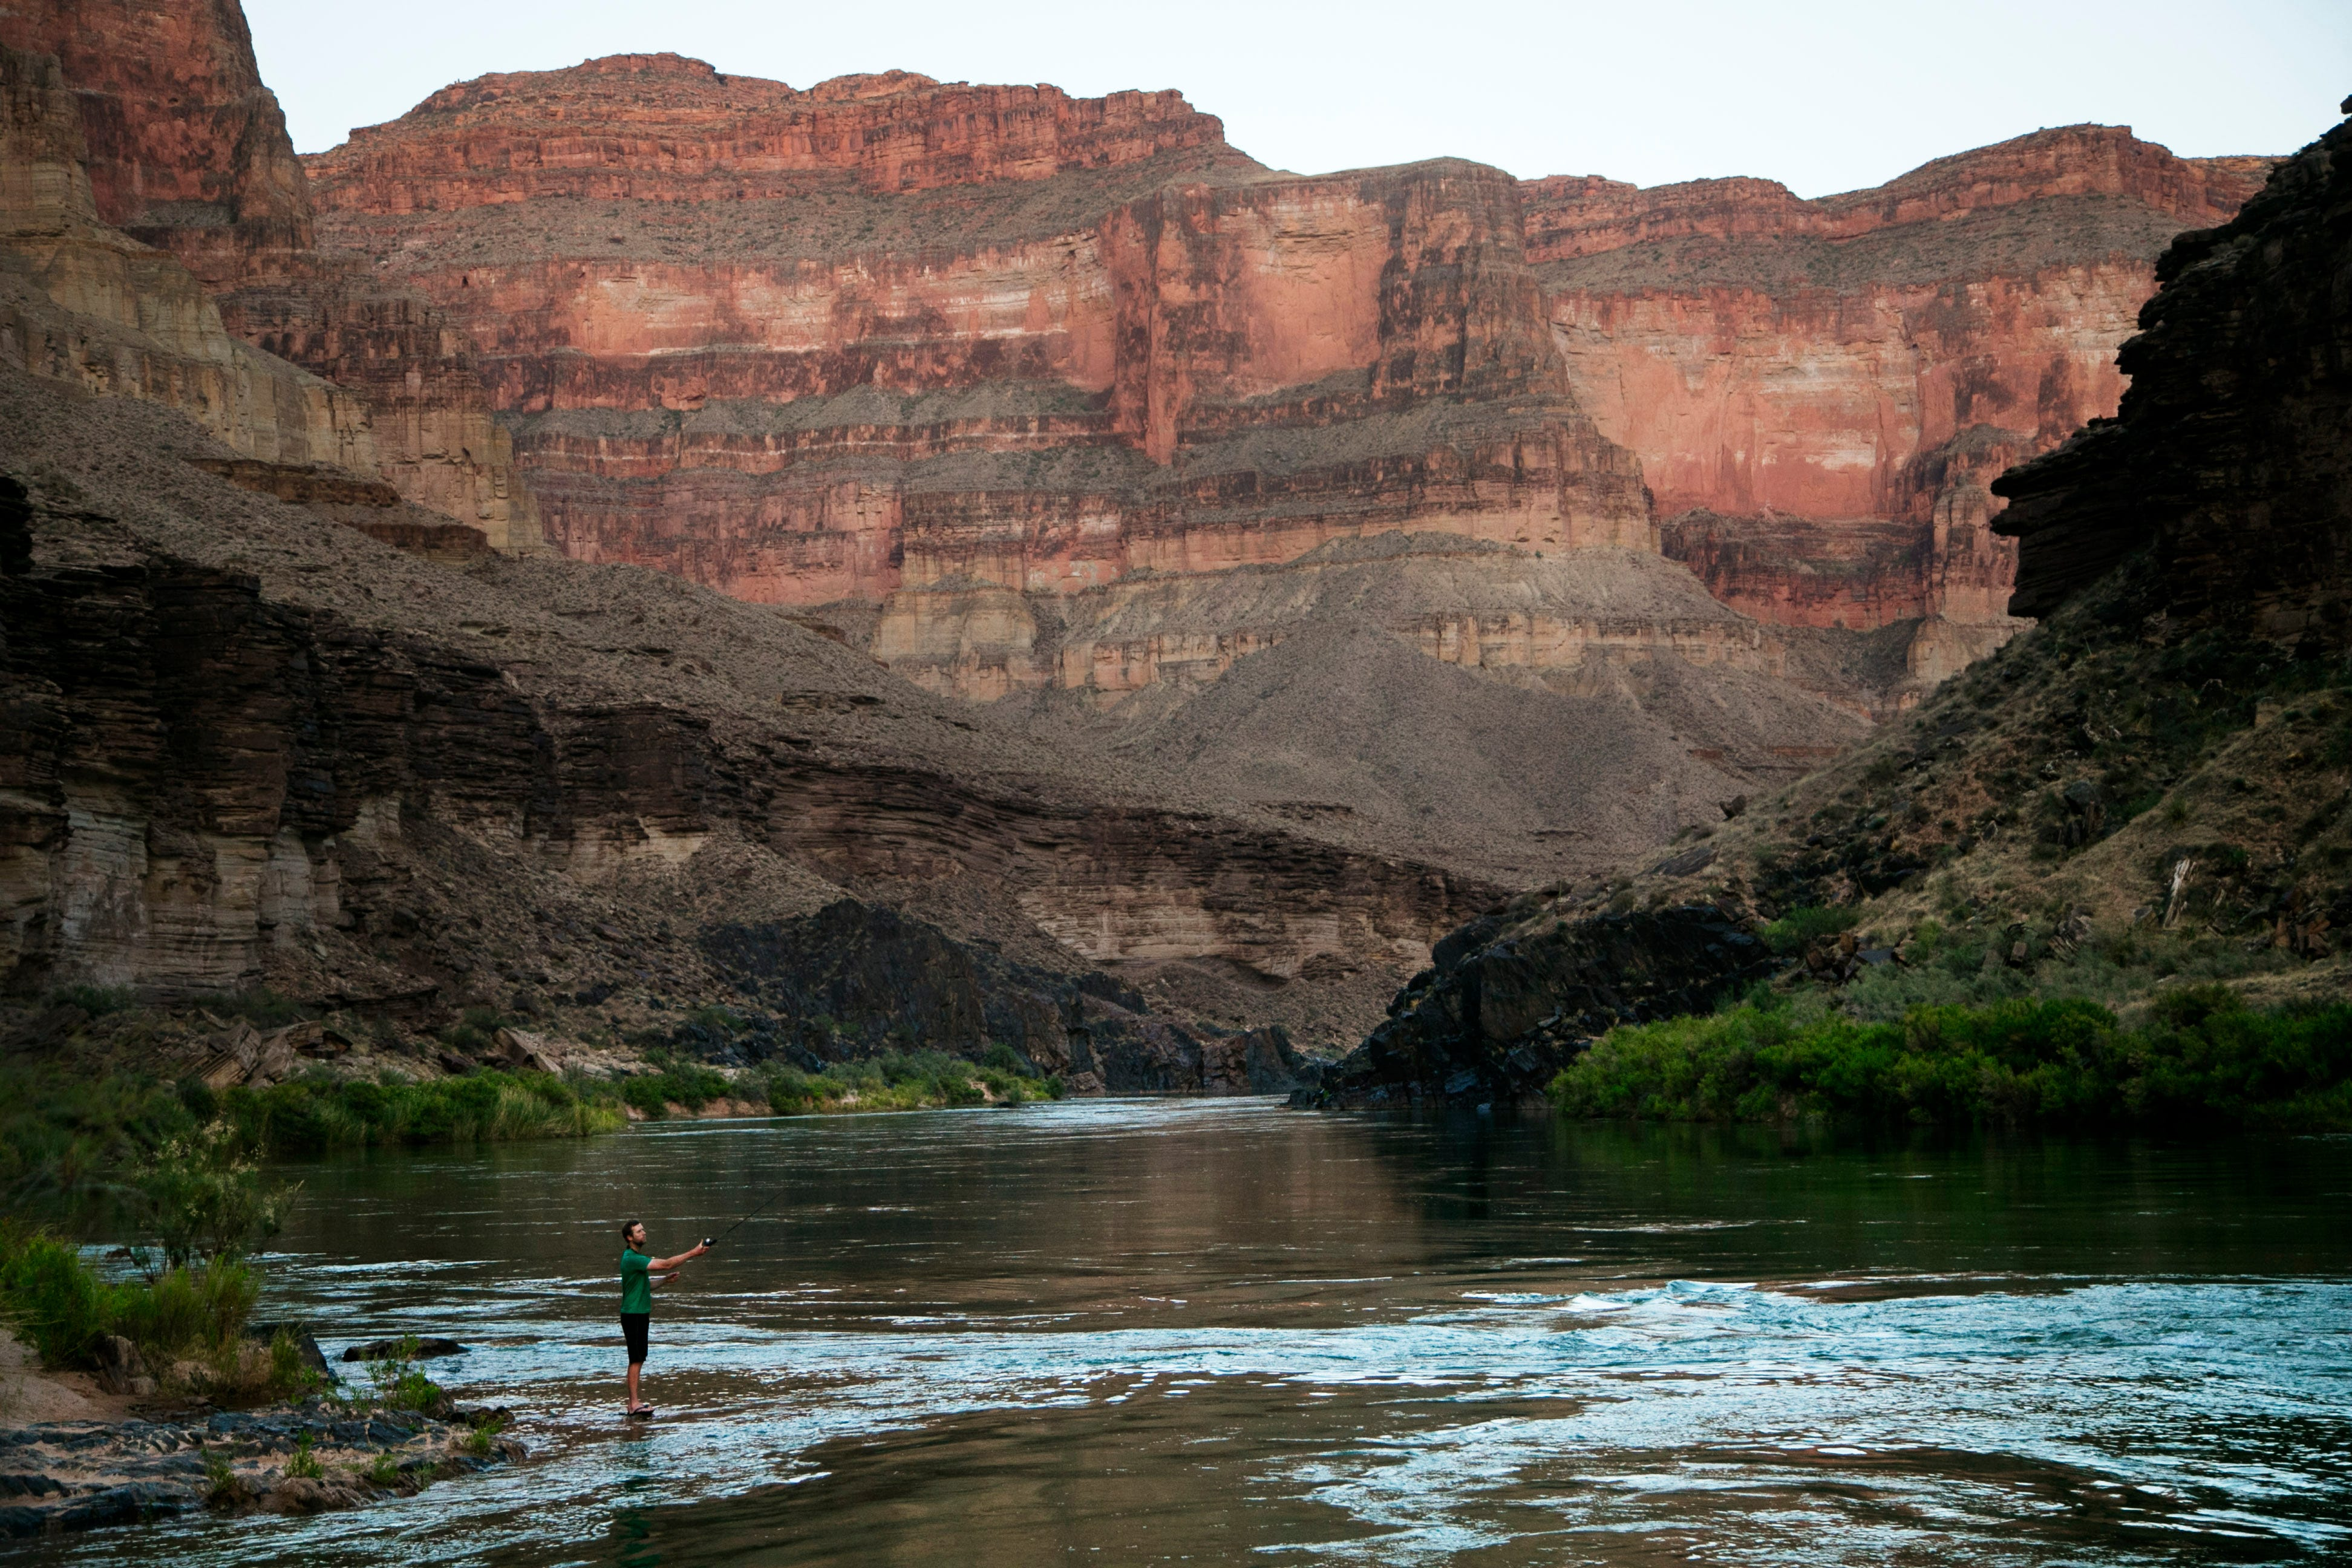 River runner Daniel Brown fishes in the Colorado River near the confluence with Blacktail Canyon in Grand Canyon National Park. Non-native trout have flourished here, and some say they've had a negative impact on the native species of fish.